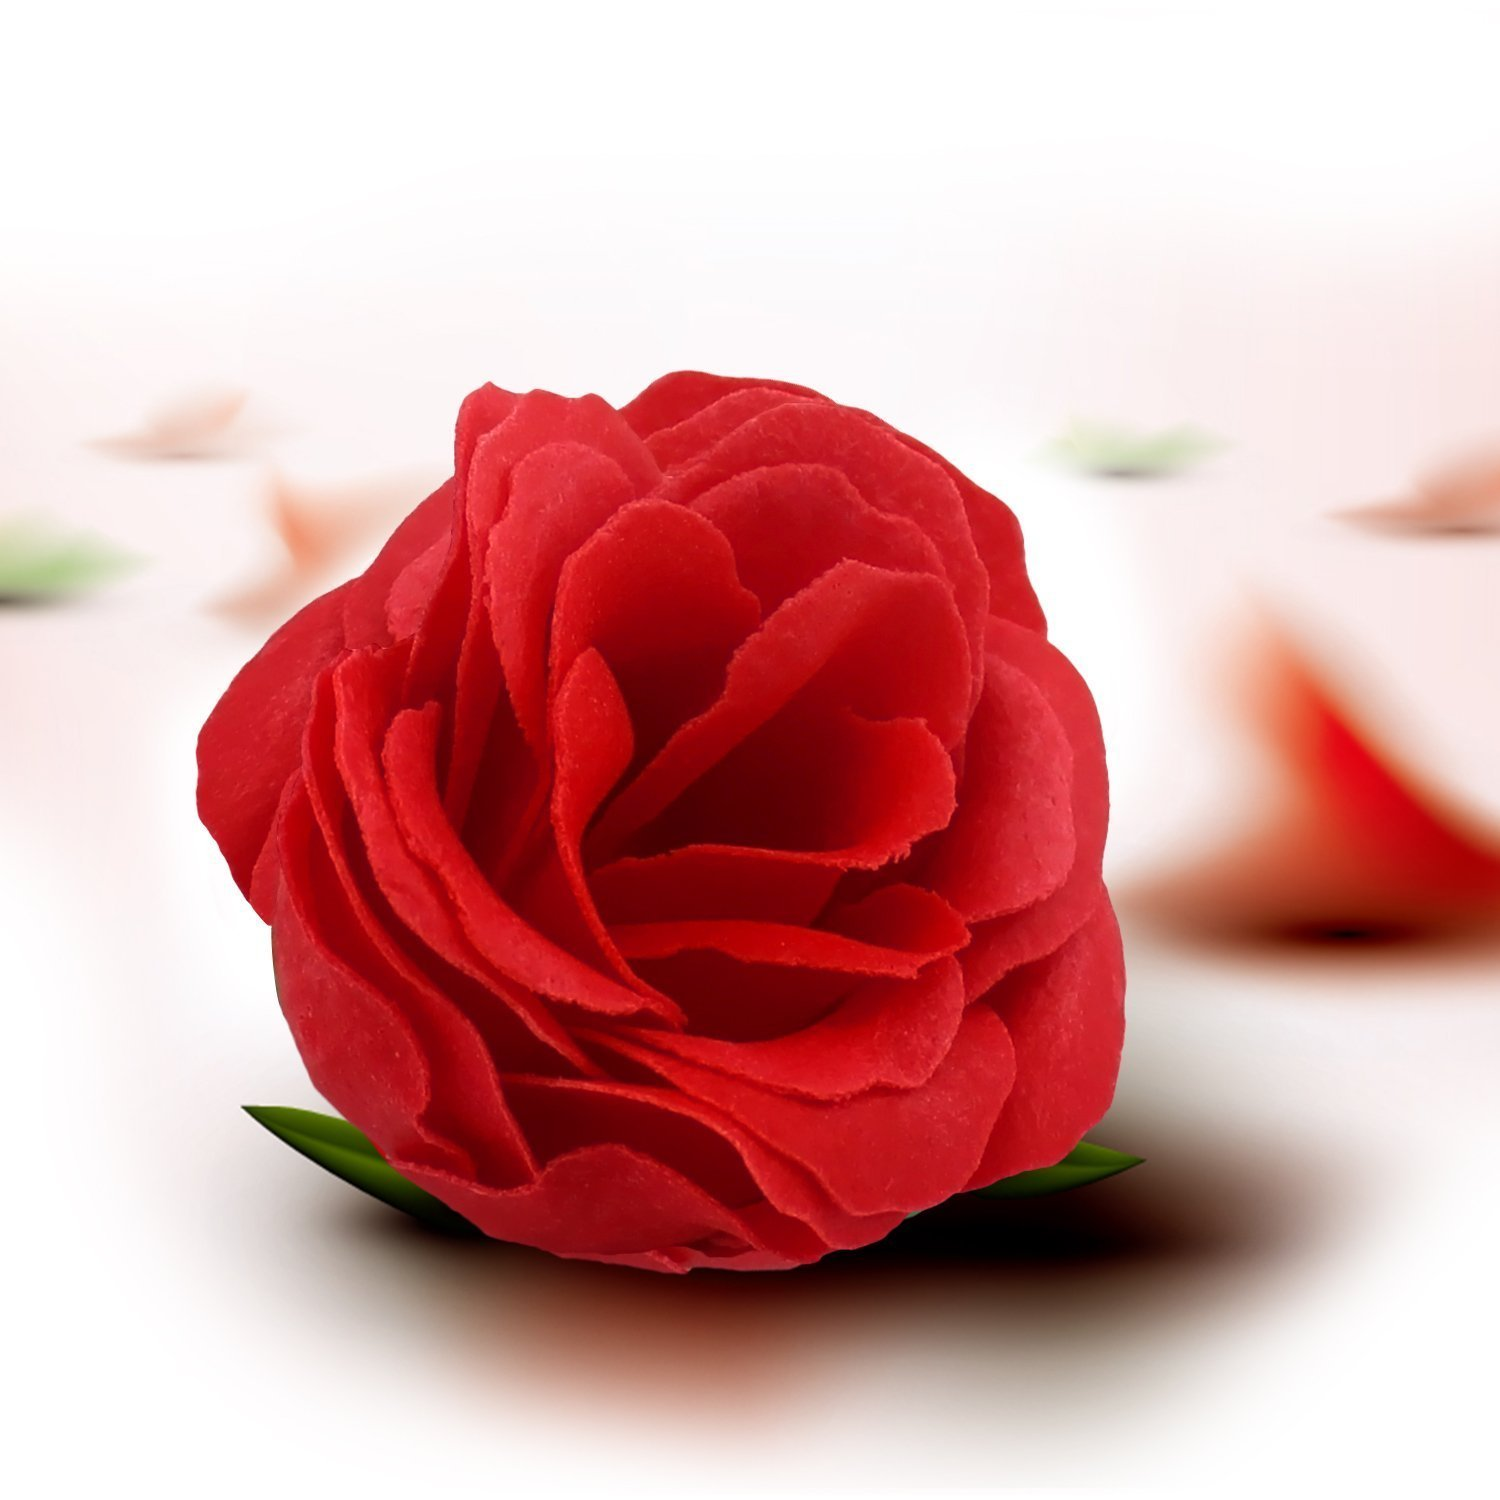 Rose day -Gifts -V7